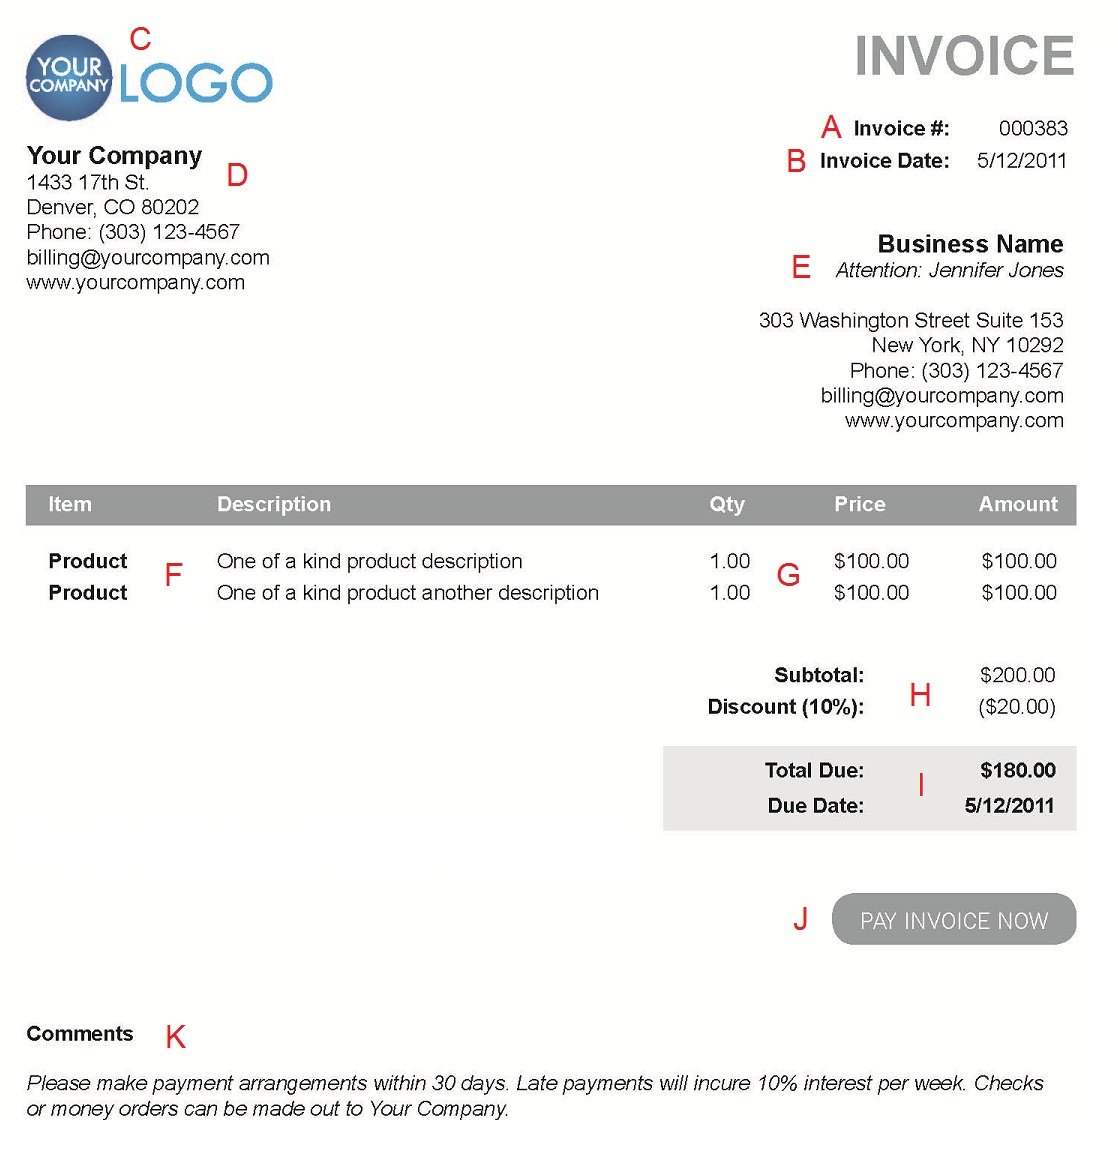 Coachoutletonlineplusus  Marvelous The  Different Sections Of An Electronic Payment Invoice With Licious A  With Nice Contractor Receipt Also Receipt For Hot Wings In Addition Usmc Cif Receipt Online And Make Fake Receipts Free As Well As E Ticket Itinerary Receipt Additionally What Is Receipt Book From Paysimplecom With Coachoutletonlineplusus  Licious The  Different Sections Of An Electronic Payment Invoice With Nice A  And Marvelous Contractor Receipt Also Receipt For Hot Wings In Addition Usmc Cif Receipt Online From Paysimplecom